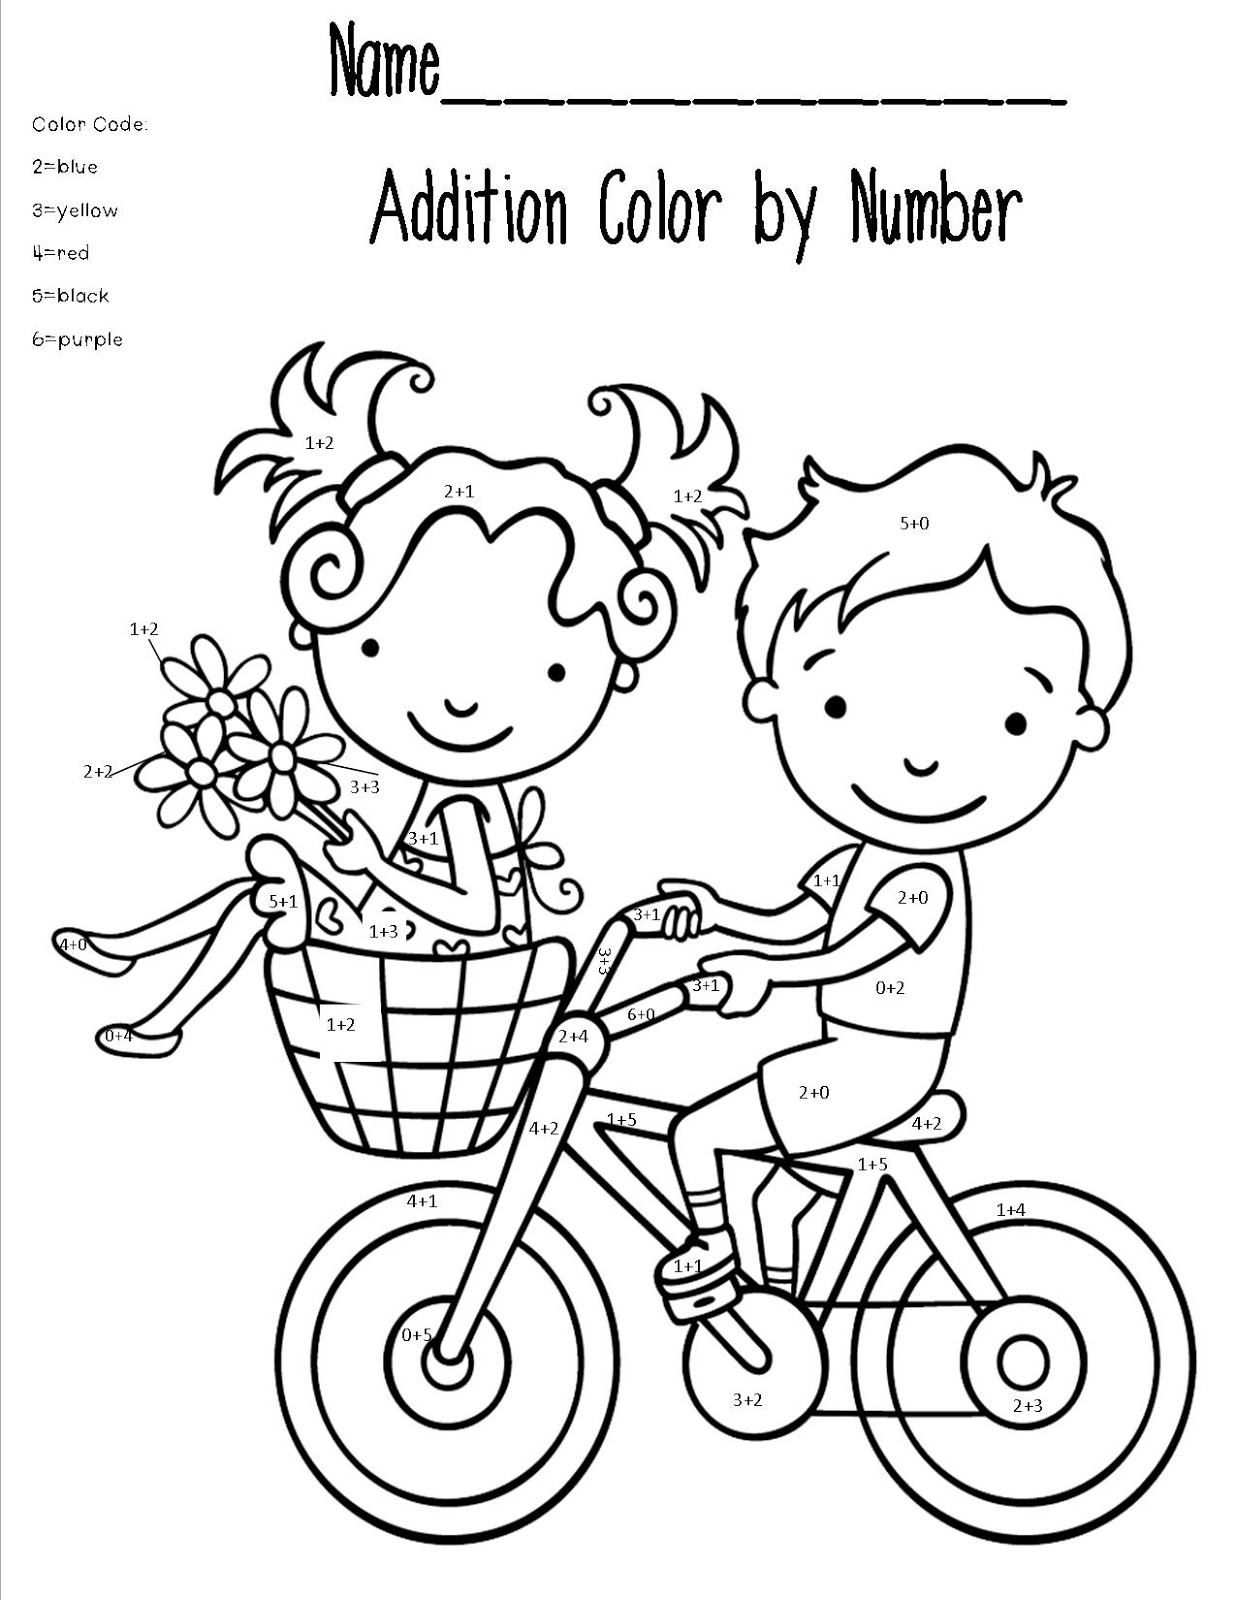 1st grade coloring pages first grade coloring sheets coloring pages for kids pages 1st grade coloring